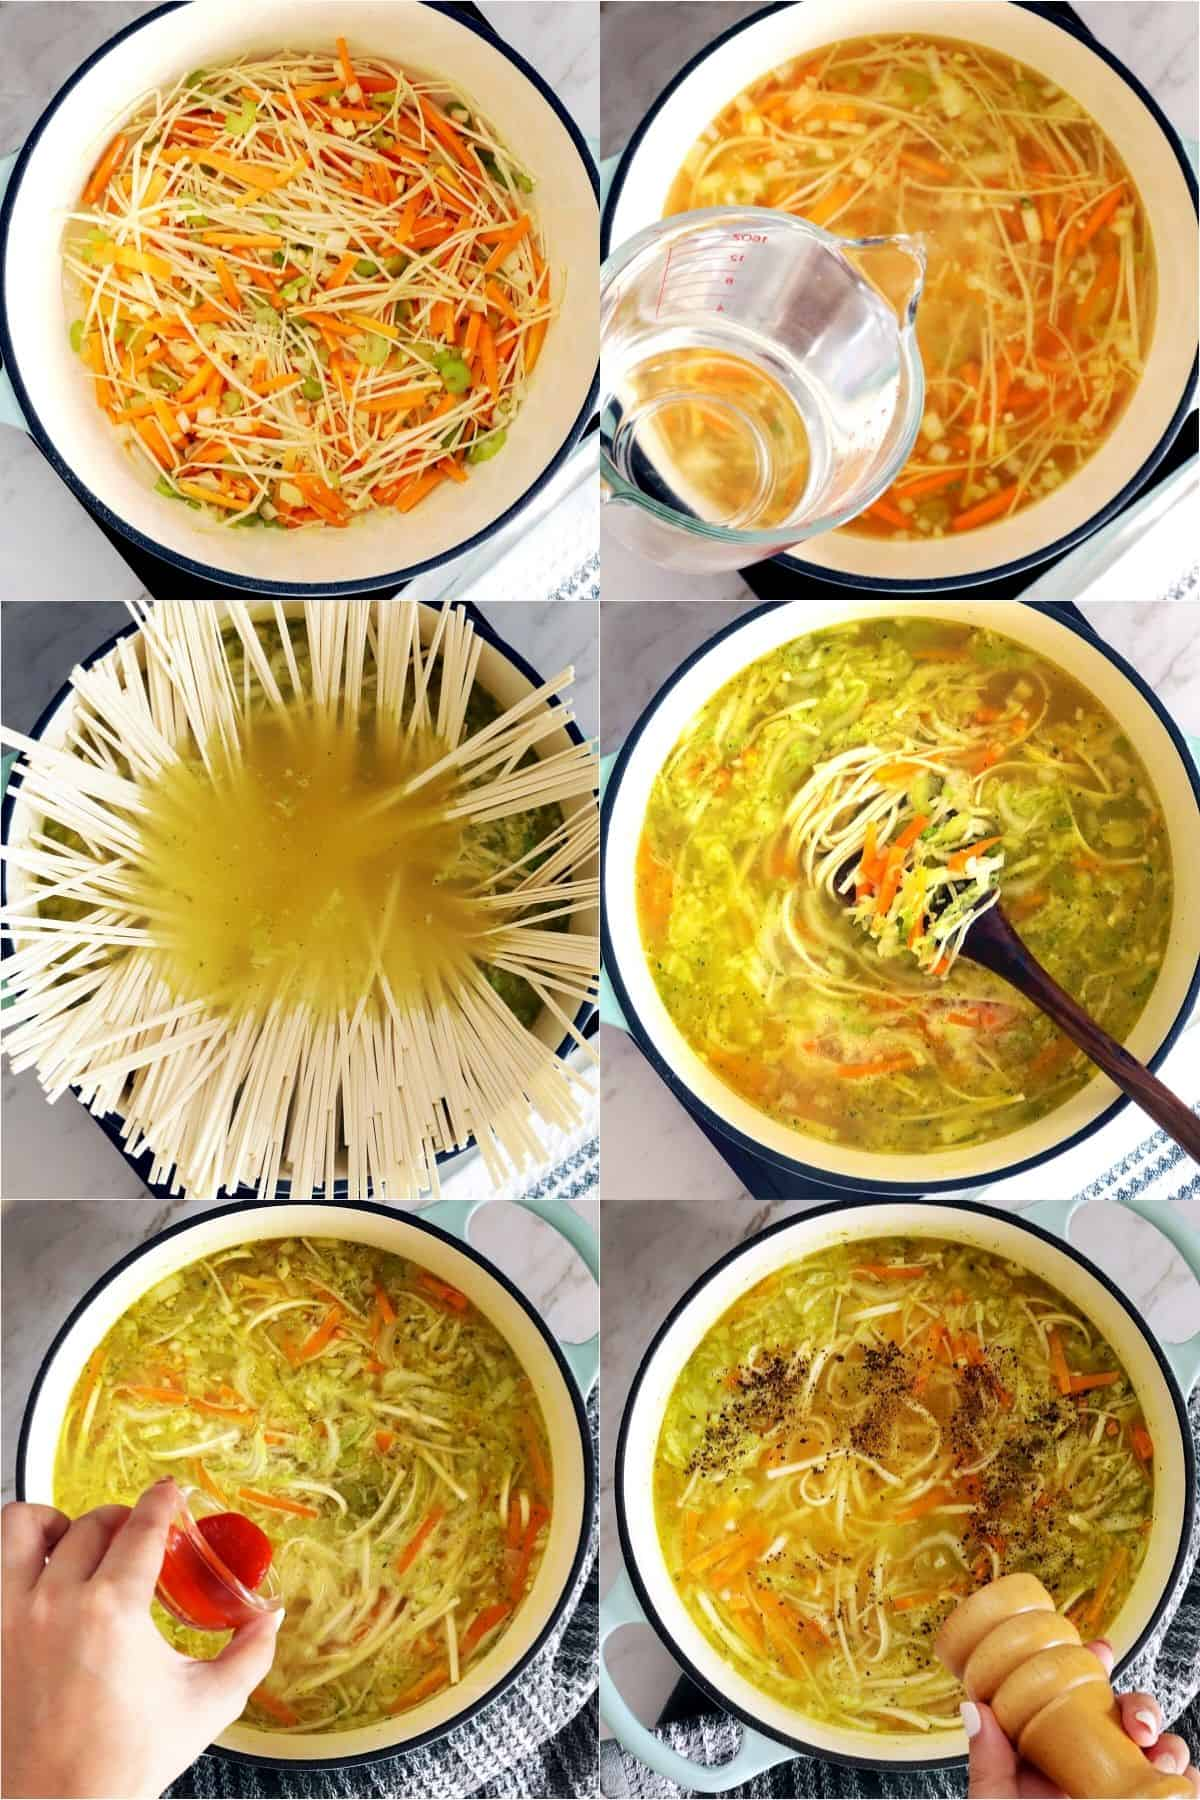 6 process photos of cooking udon noodle soup.